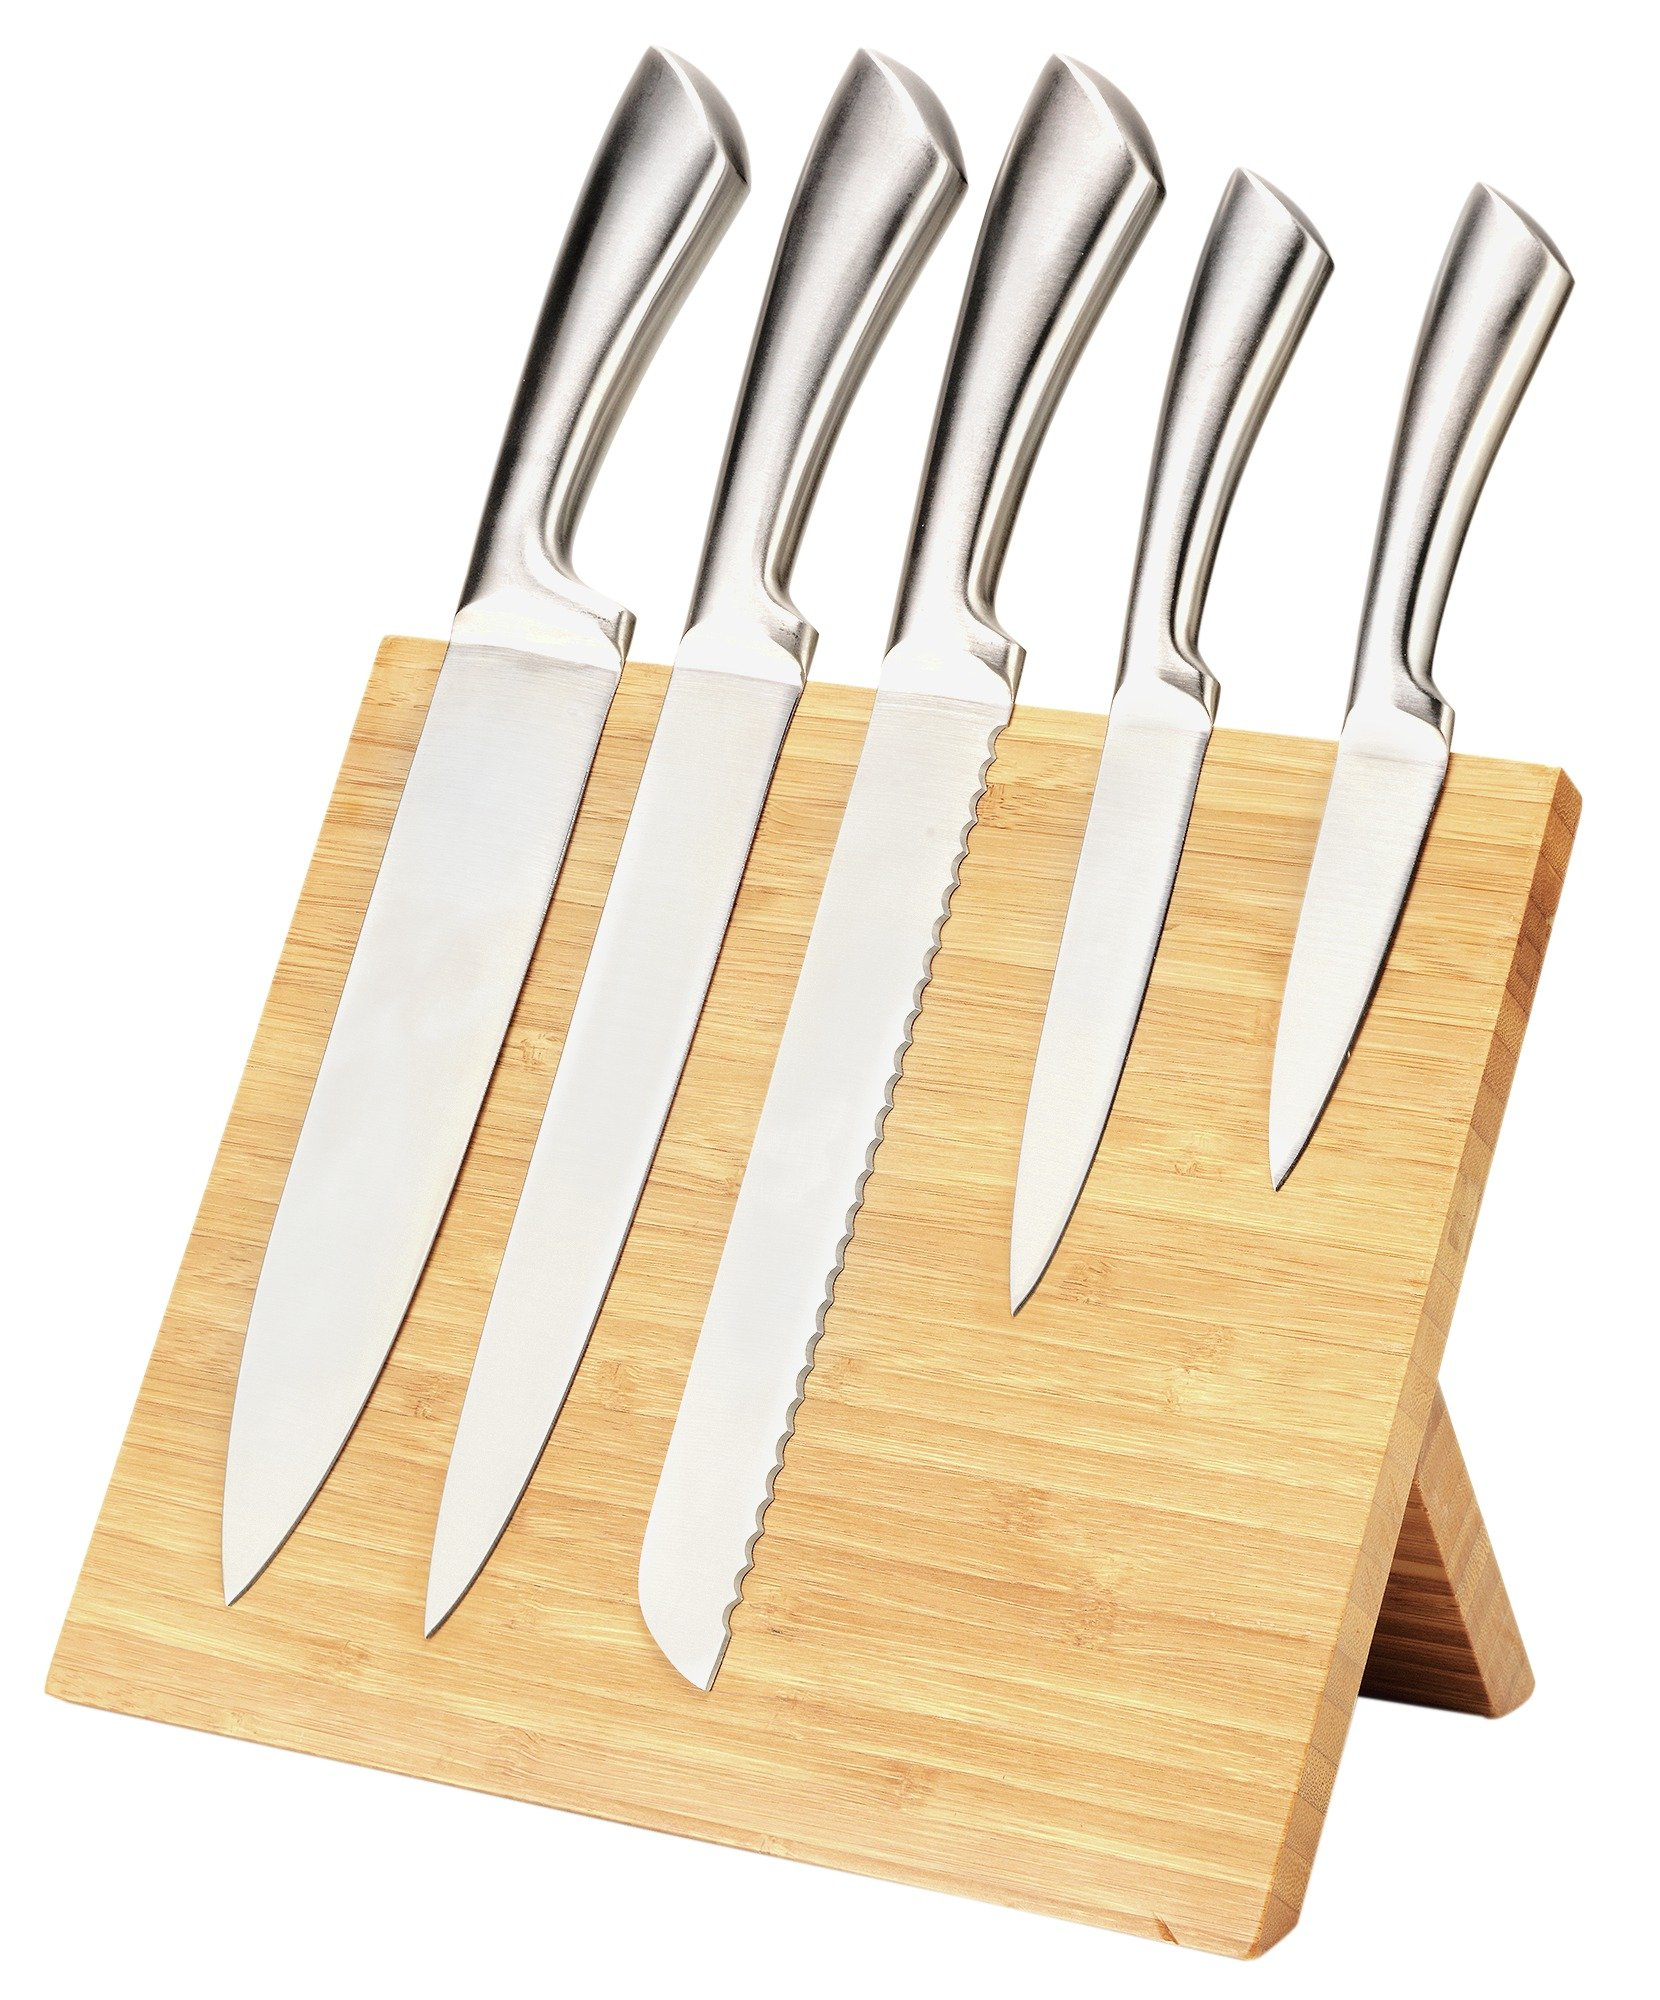 knife block set kitchen knife block sets knife block set home page heart of house magnetic bamboo knife block with 5 knives